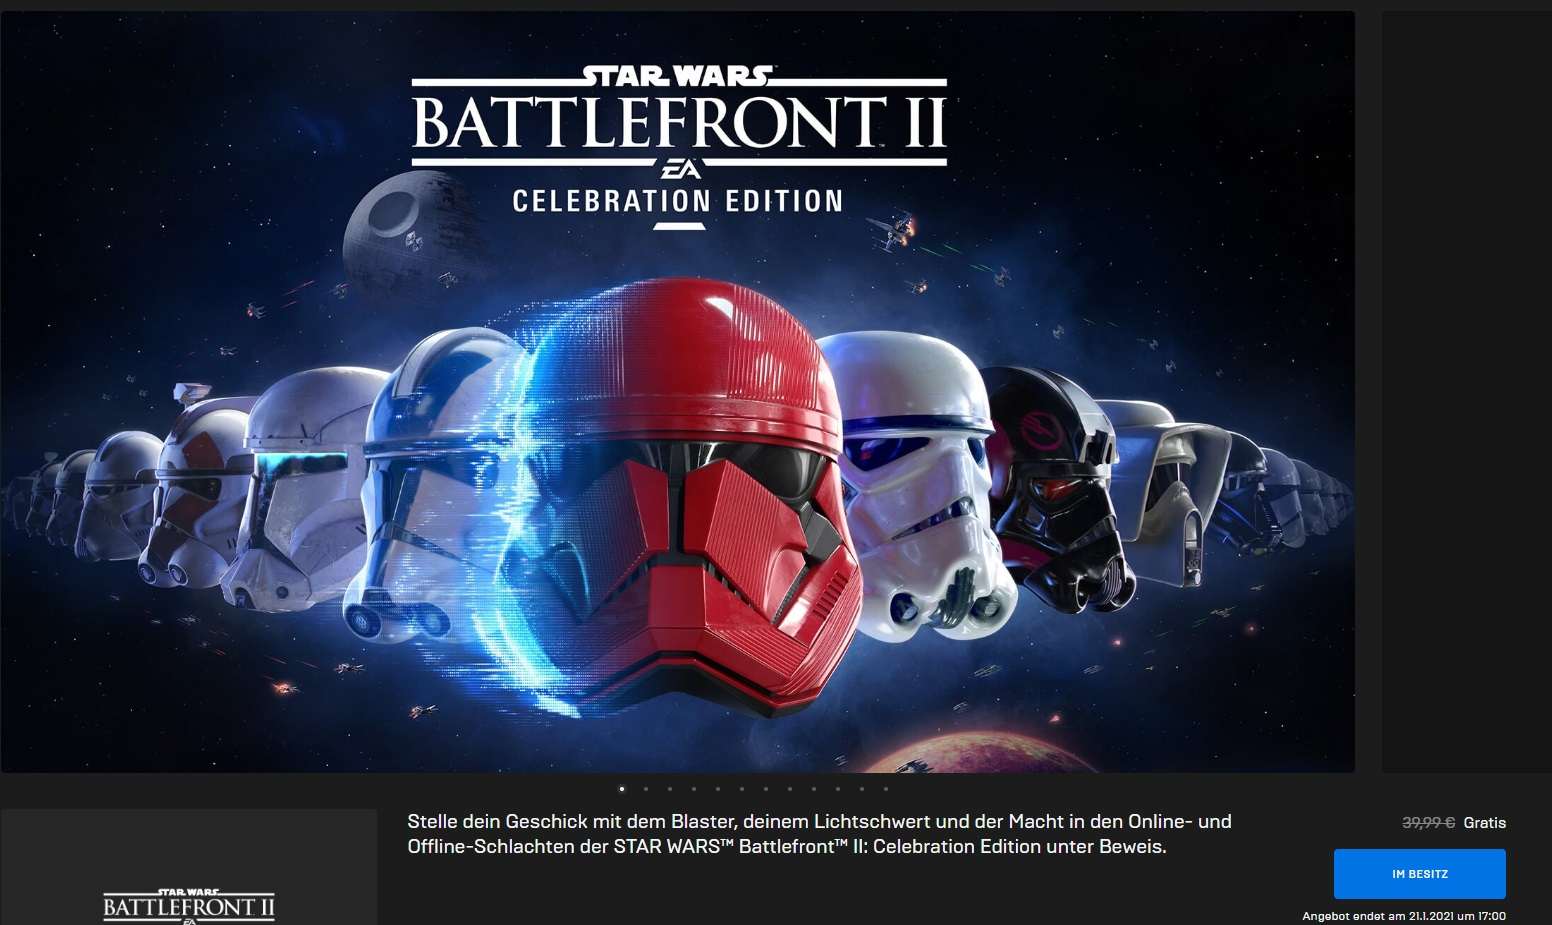 6002d3746b296News_Battlefront2.jpg